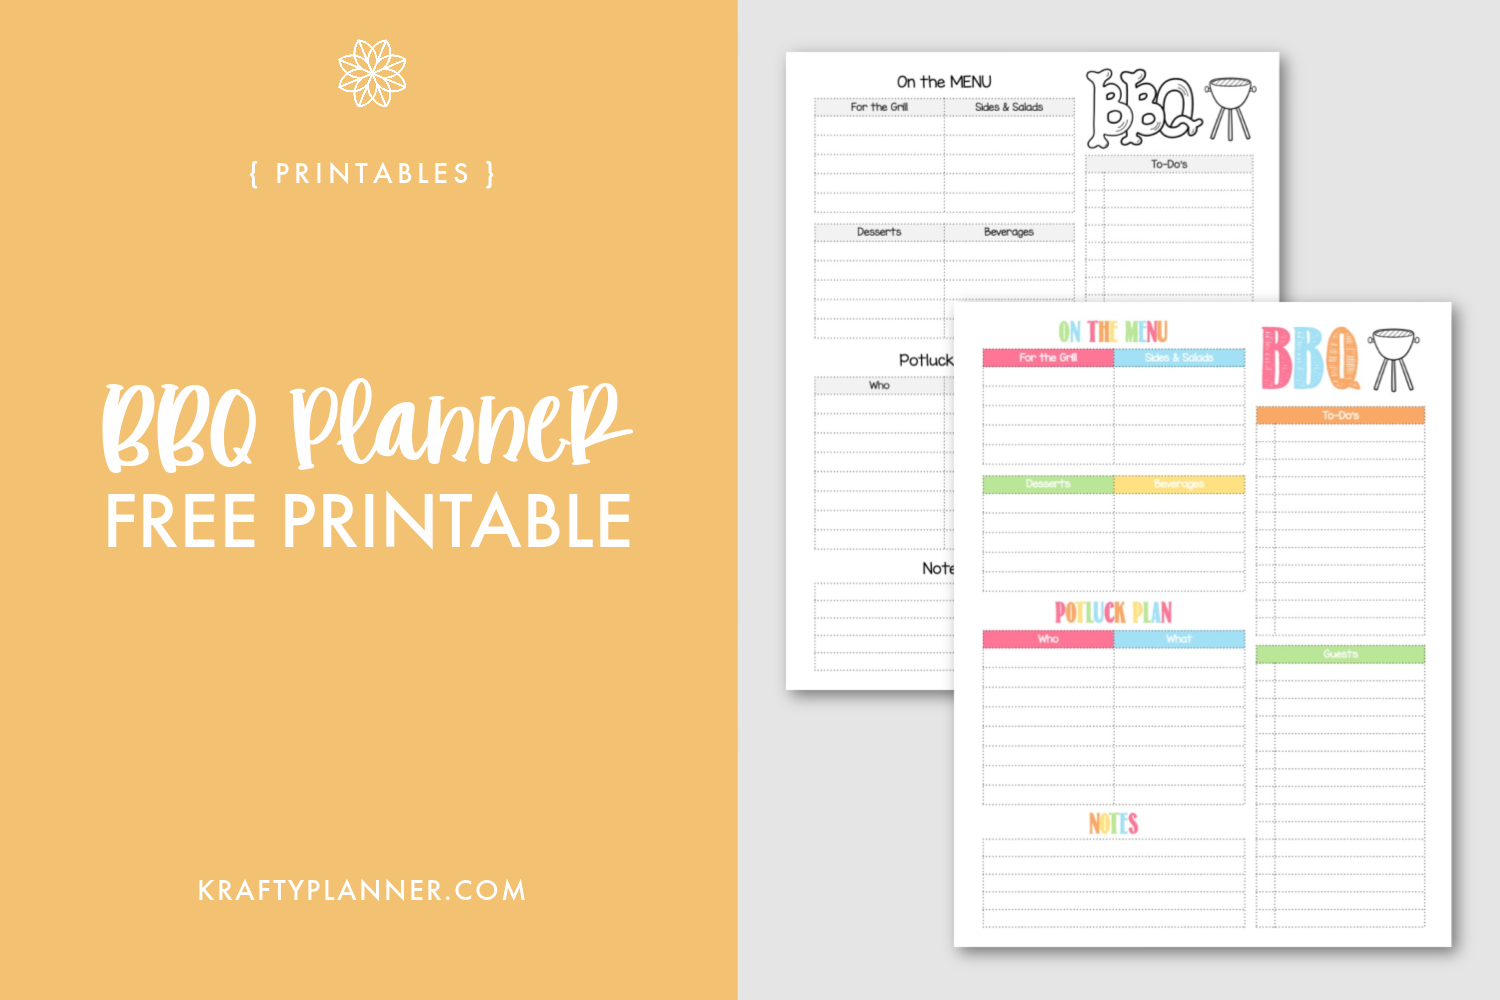 Summer BBQ Planner Printables Main Image.png